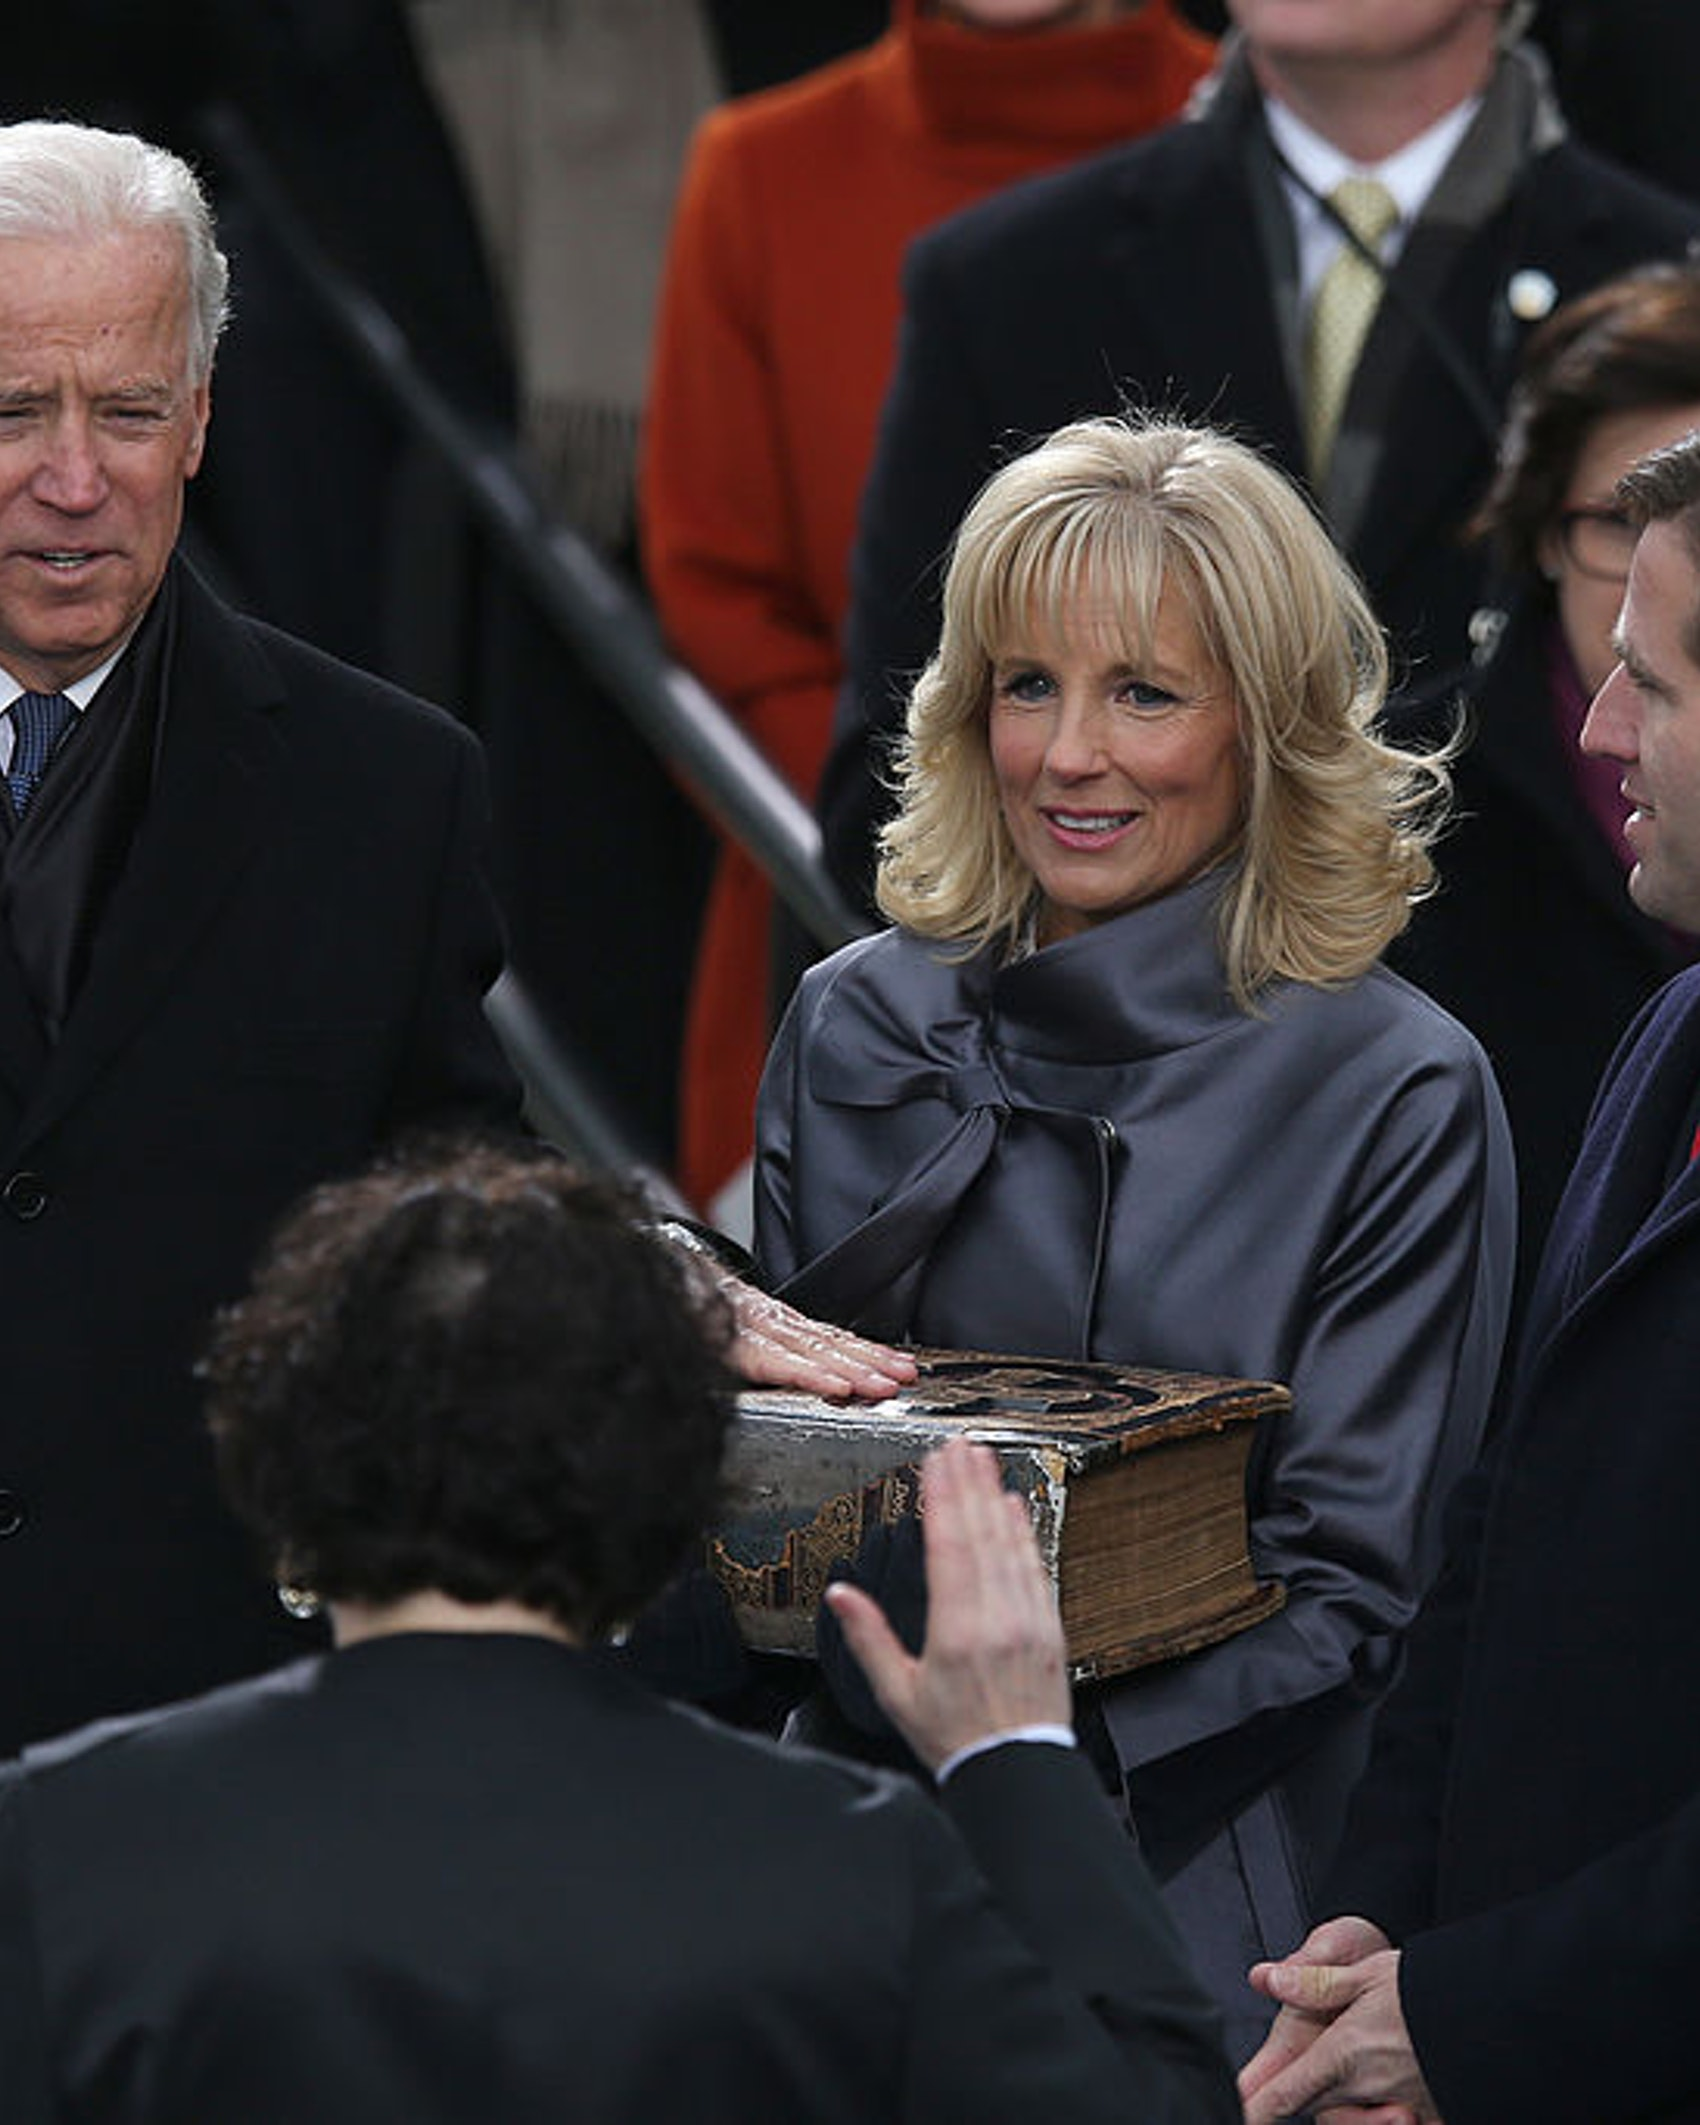 WASHINGTON, DC - JANUARY 21: U.S. Vice President Joe Biden is sworn in by Supreme Court Justice Sonia Sotomayor as wife Dr. Jill Biden and son Beau Biden look on during the presidential inauguration on the West Front of the U.S. Capitol January 21, 2013 in Washington, DC. Barack Obama was re-elected for a second term as President of the United States. (Photo by Mark Wilson/Getty Images)